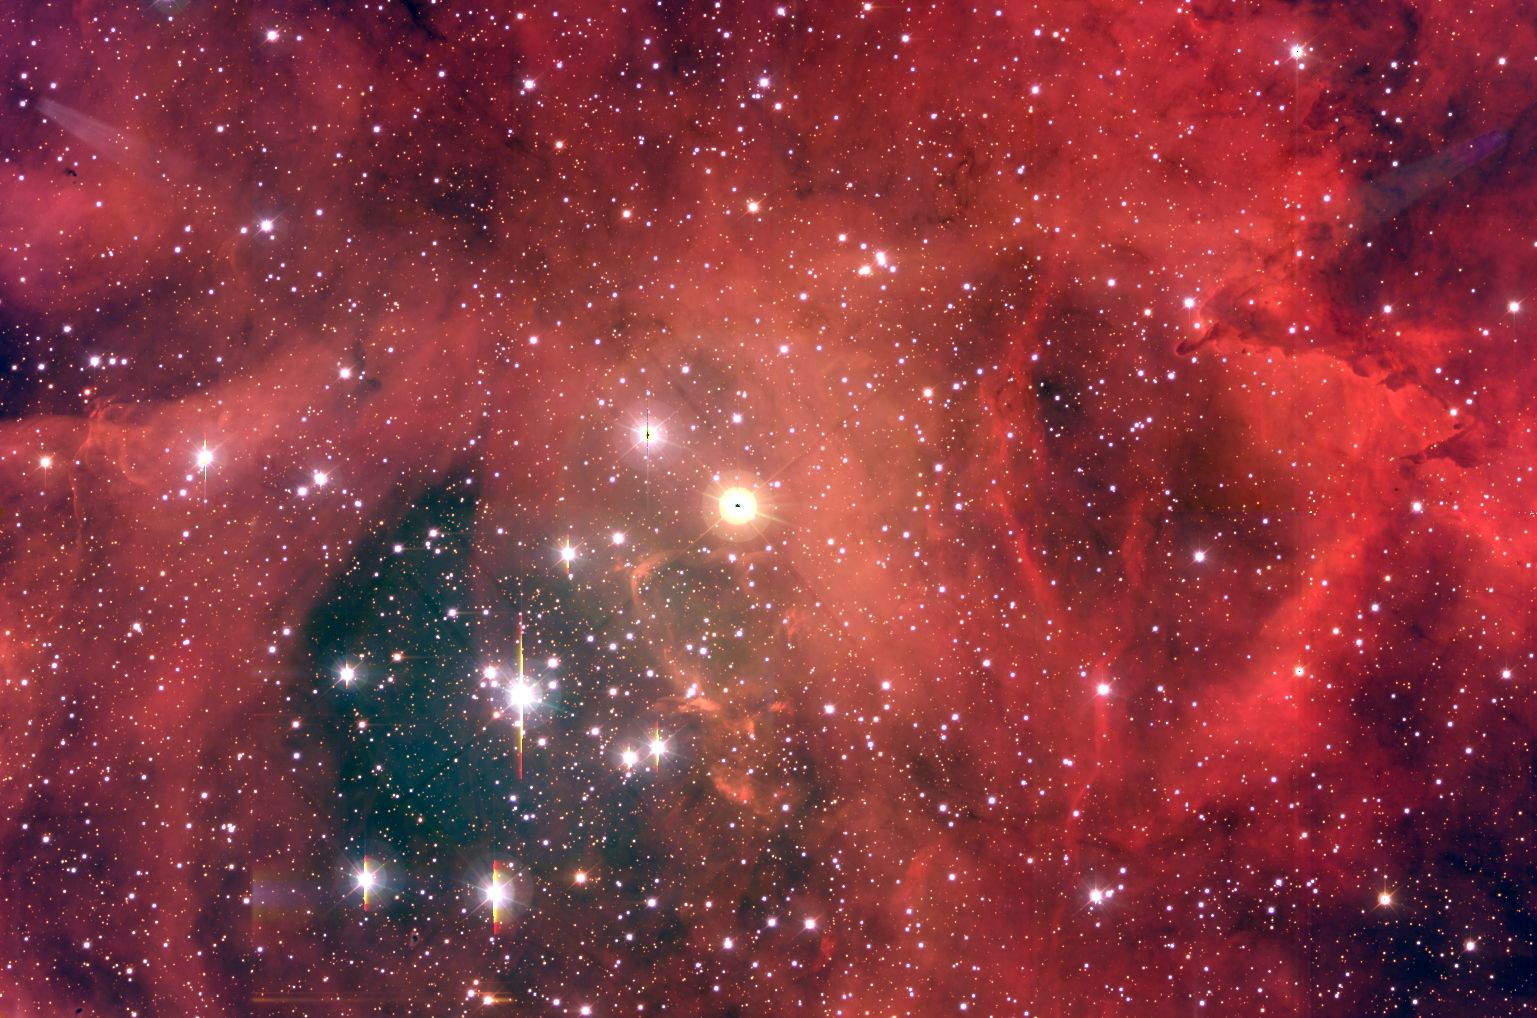 NGC 2244 A Star Cluster in the Rosette Nebula (Credit